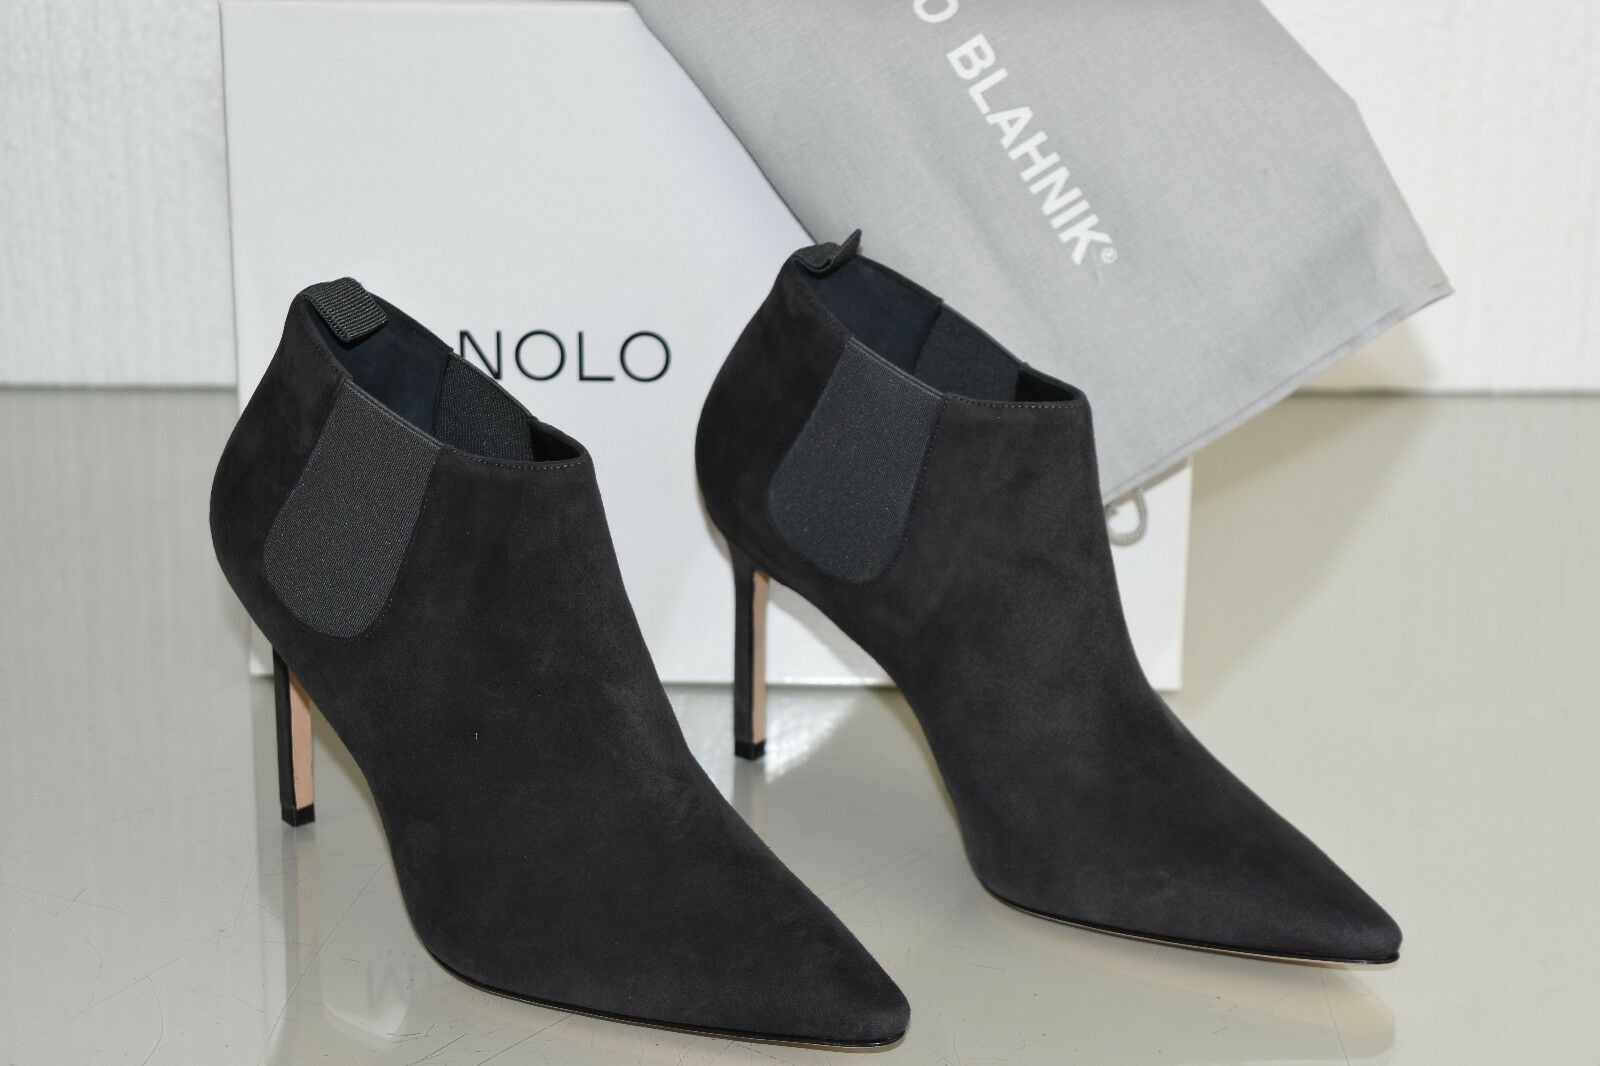 1055 New Manolo Blahnik LINUSPLA 90 Suede Ankle Bootie Boots shoes Grey 36 36.5